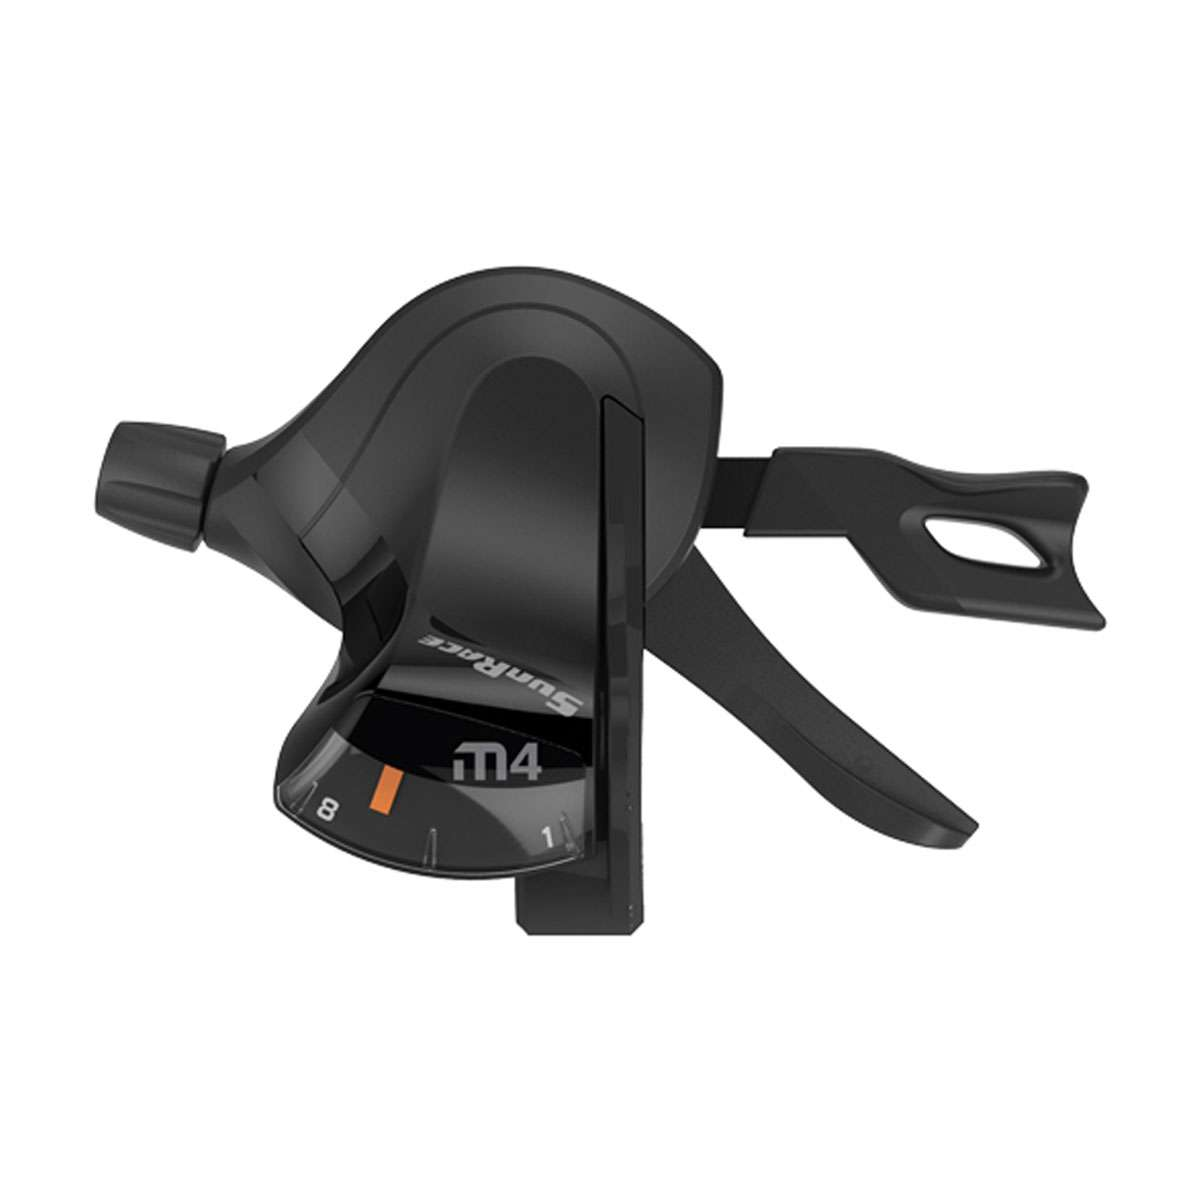 SunRace SLM400 Mountain Bicycle Shift Lever - Front, Black, 3 Speed - DLM400.L300.0S0.HP